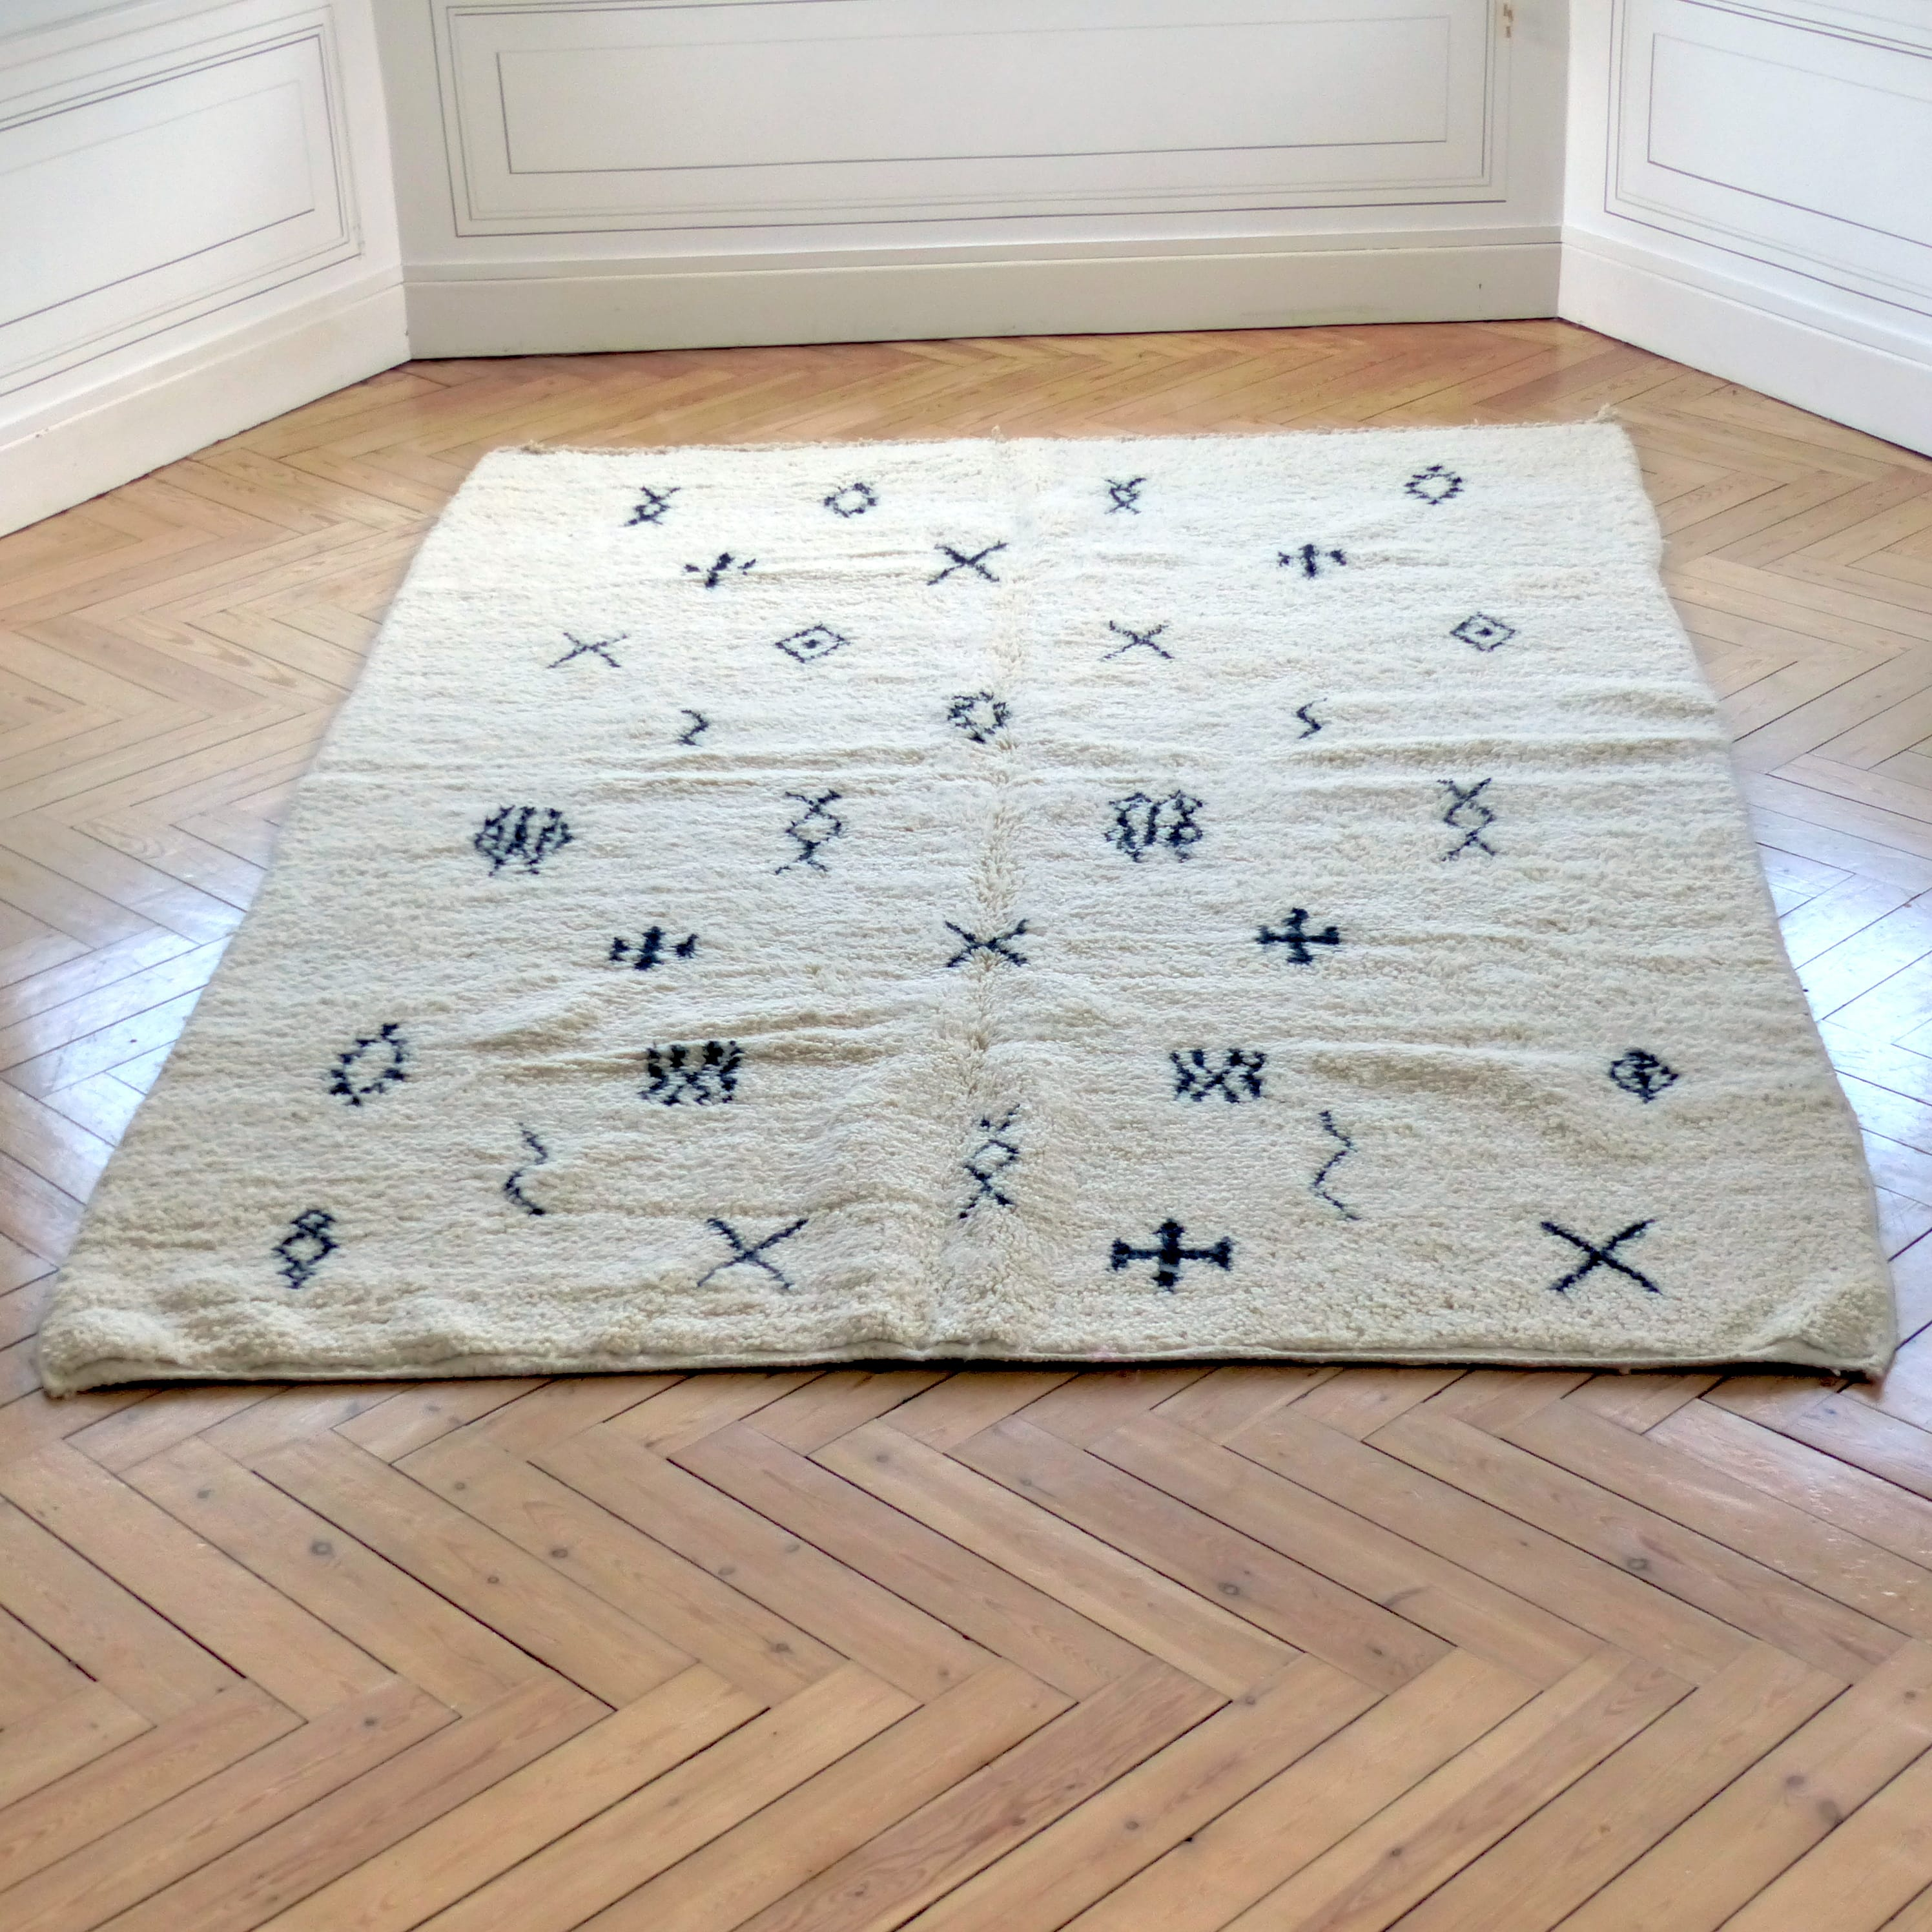 grand tapis berb re motifs des tribus de la r gion d 39 azilal lignedebrocante brocante en. Black Bedroom Furniture Sets. Home Design Ideas